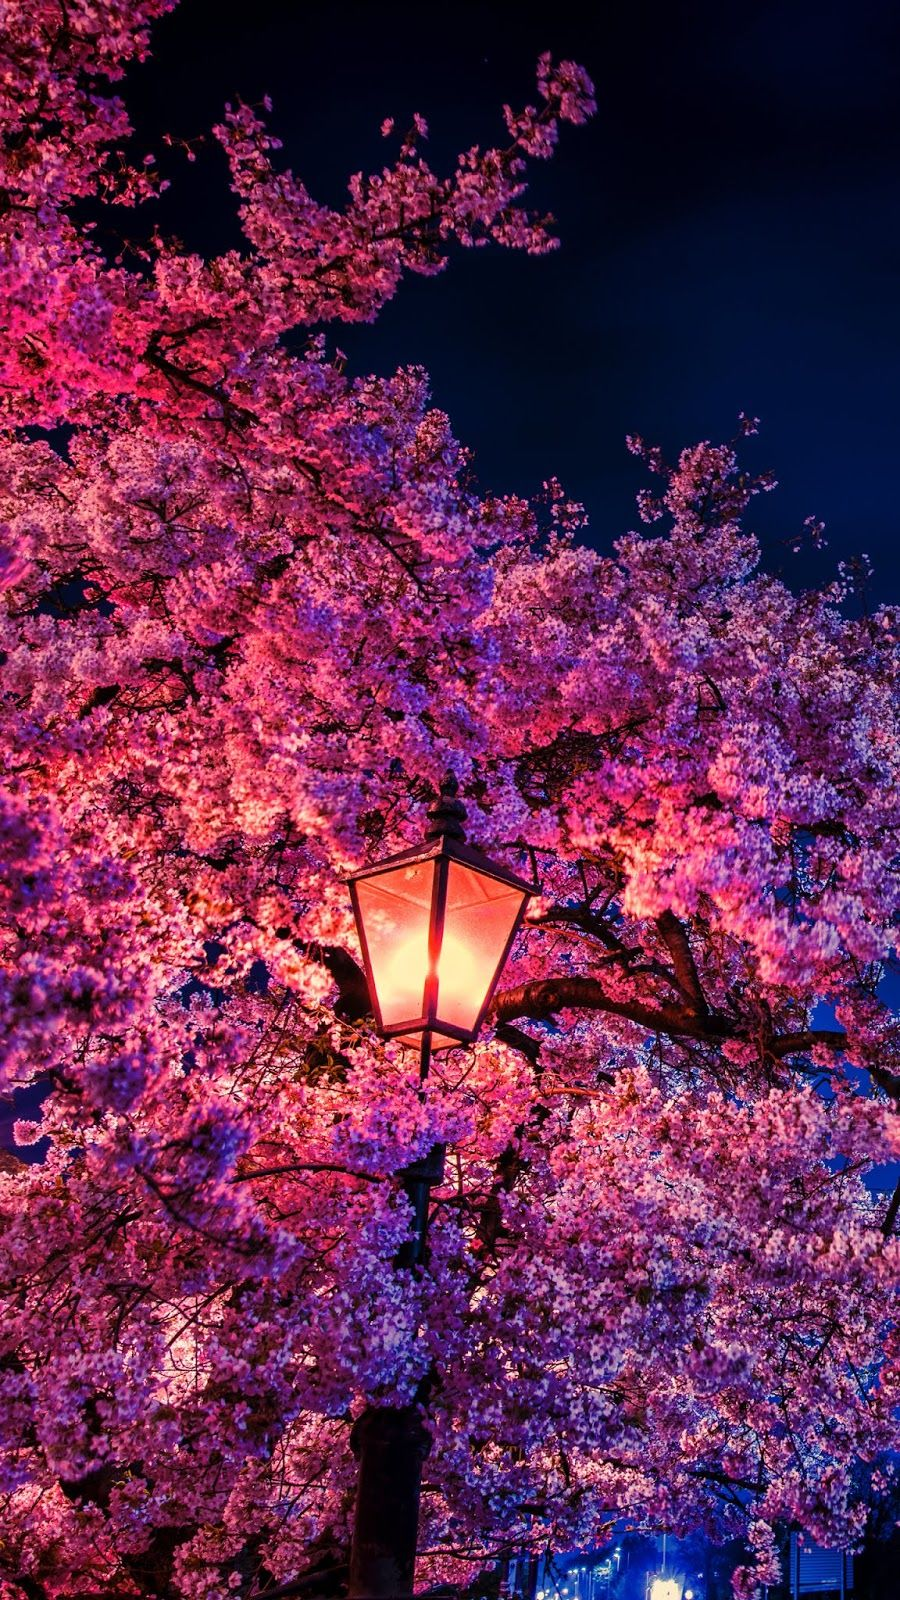 Cherry Blossom In The Night Cherry Blossom Wallpaper Iphone Cherry Blossom Wallpaper Cherry Blossom Background